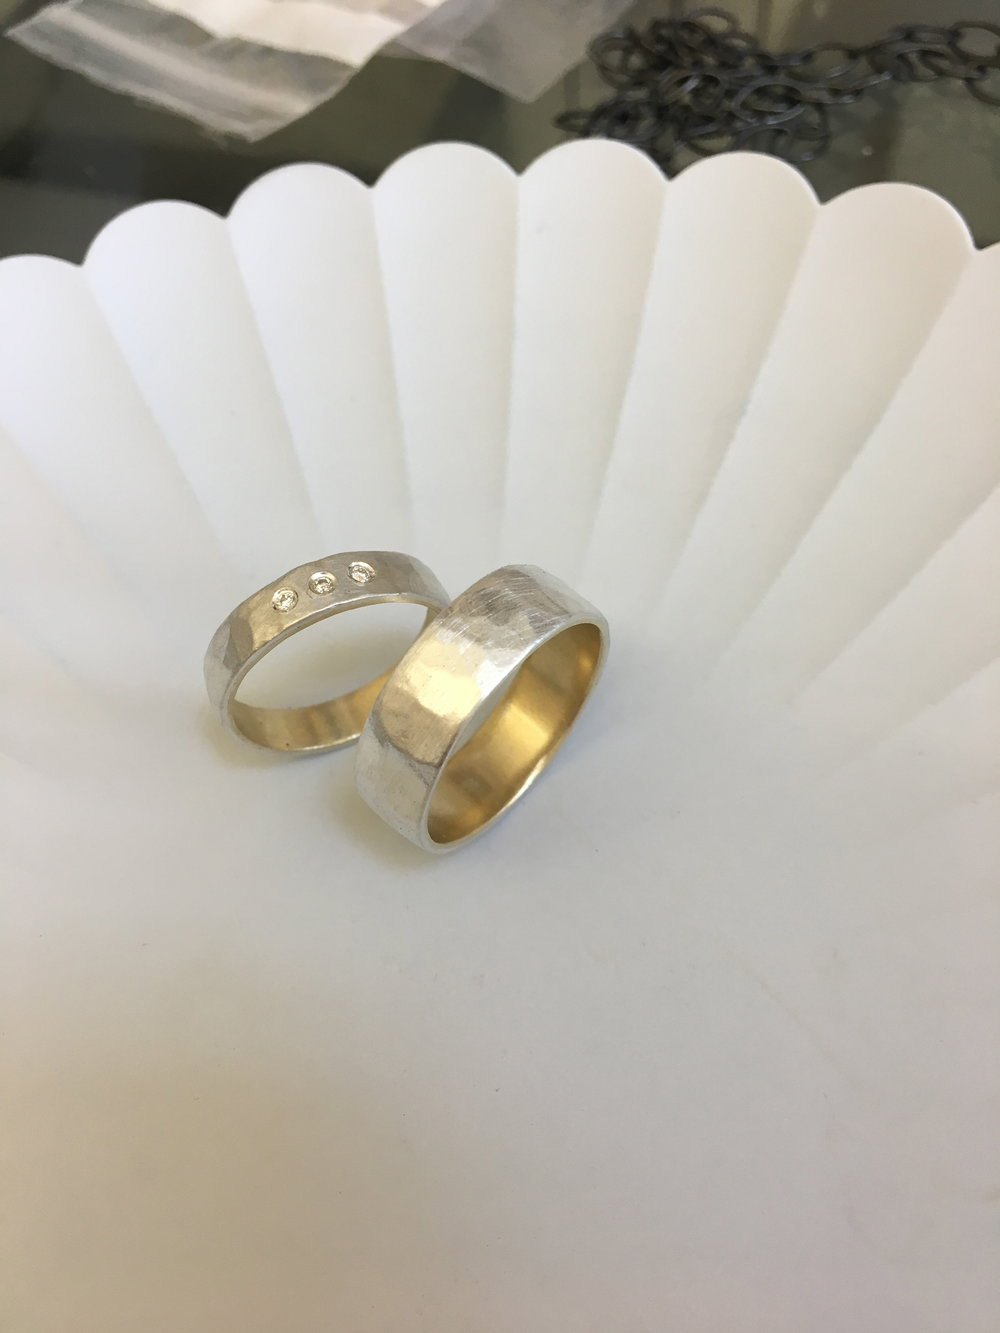 Remodel: Silver and Gold Wedding rings with three Diamonds to clients design. 2017